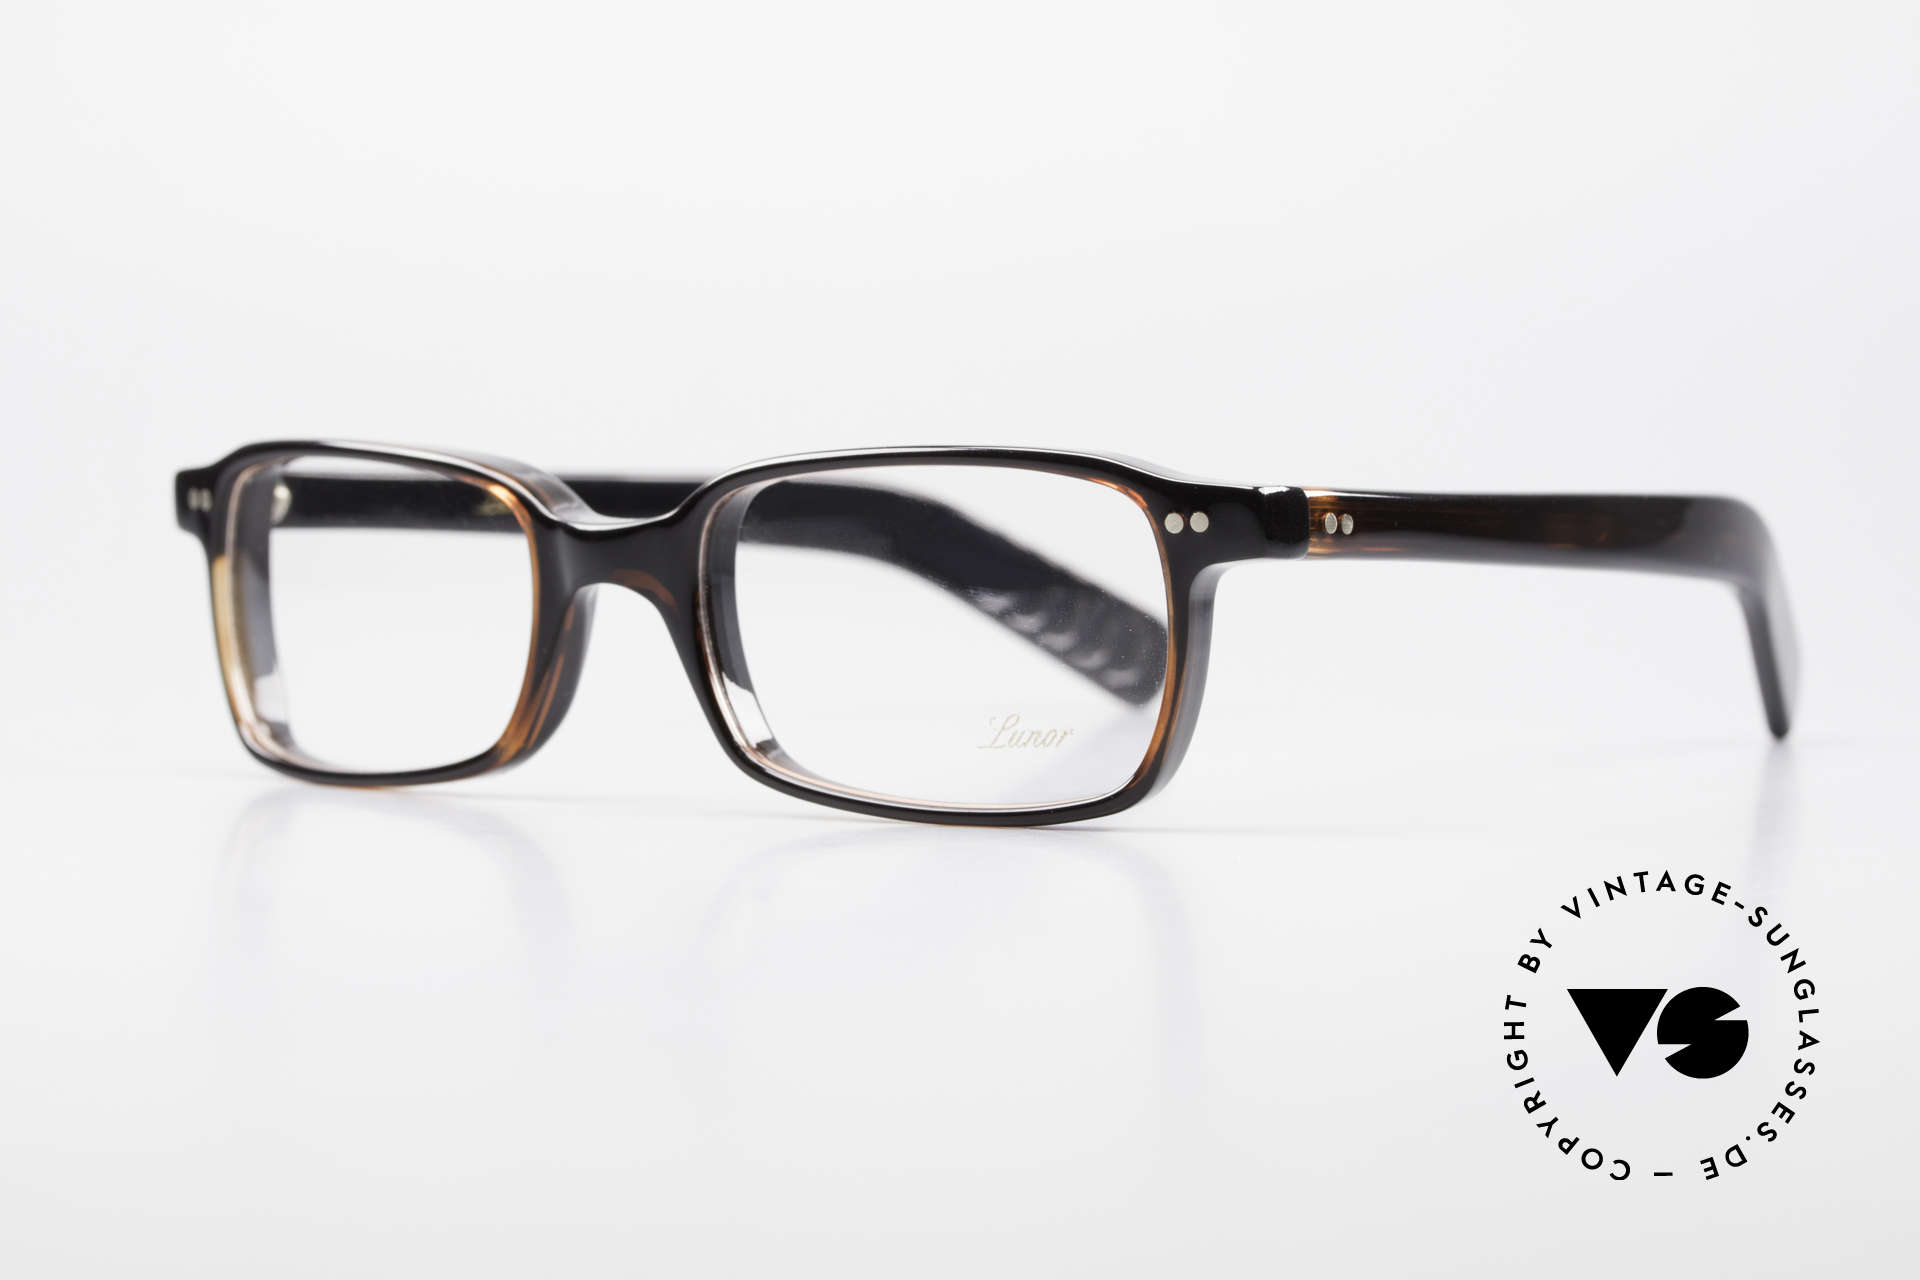 Lunor A55 Square Lunor Glasses Acetate, striking frame with a very classic 'dark havana' coloring, Made for Men and Women